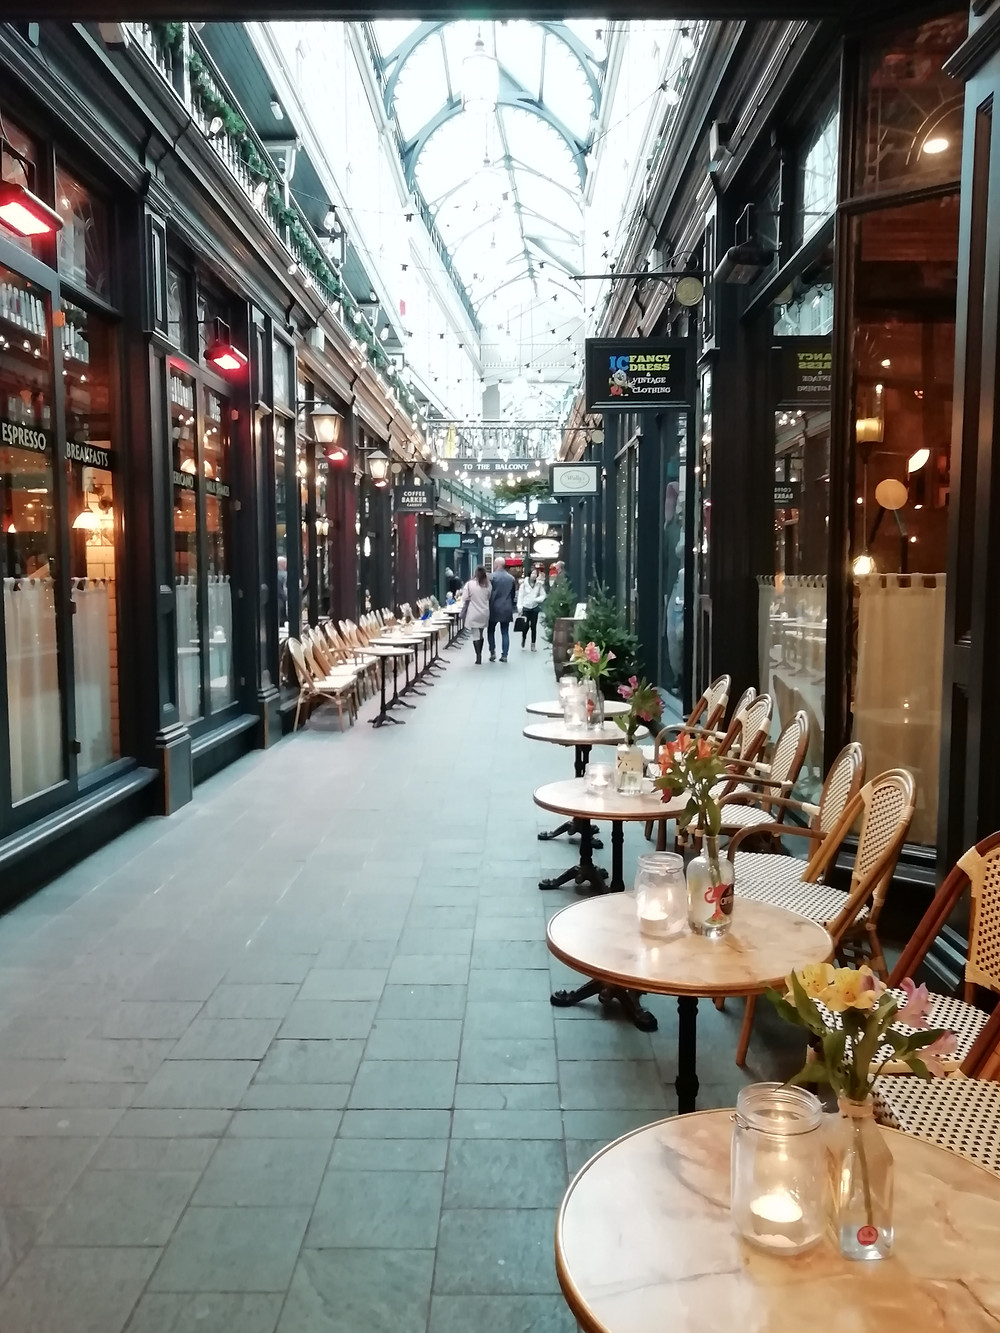 One of Cardiff's seven iconic arcades, Castle Arcade